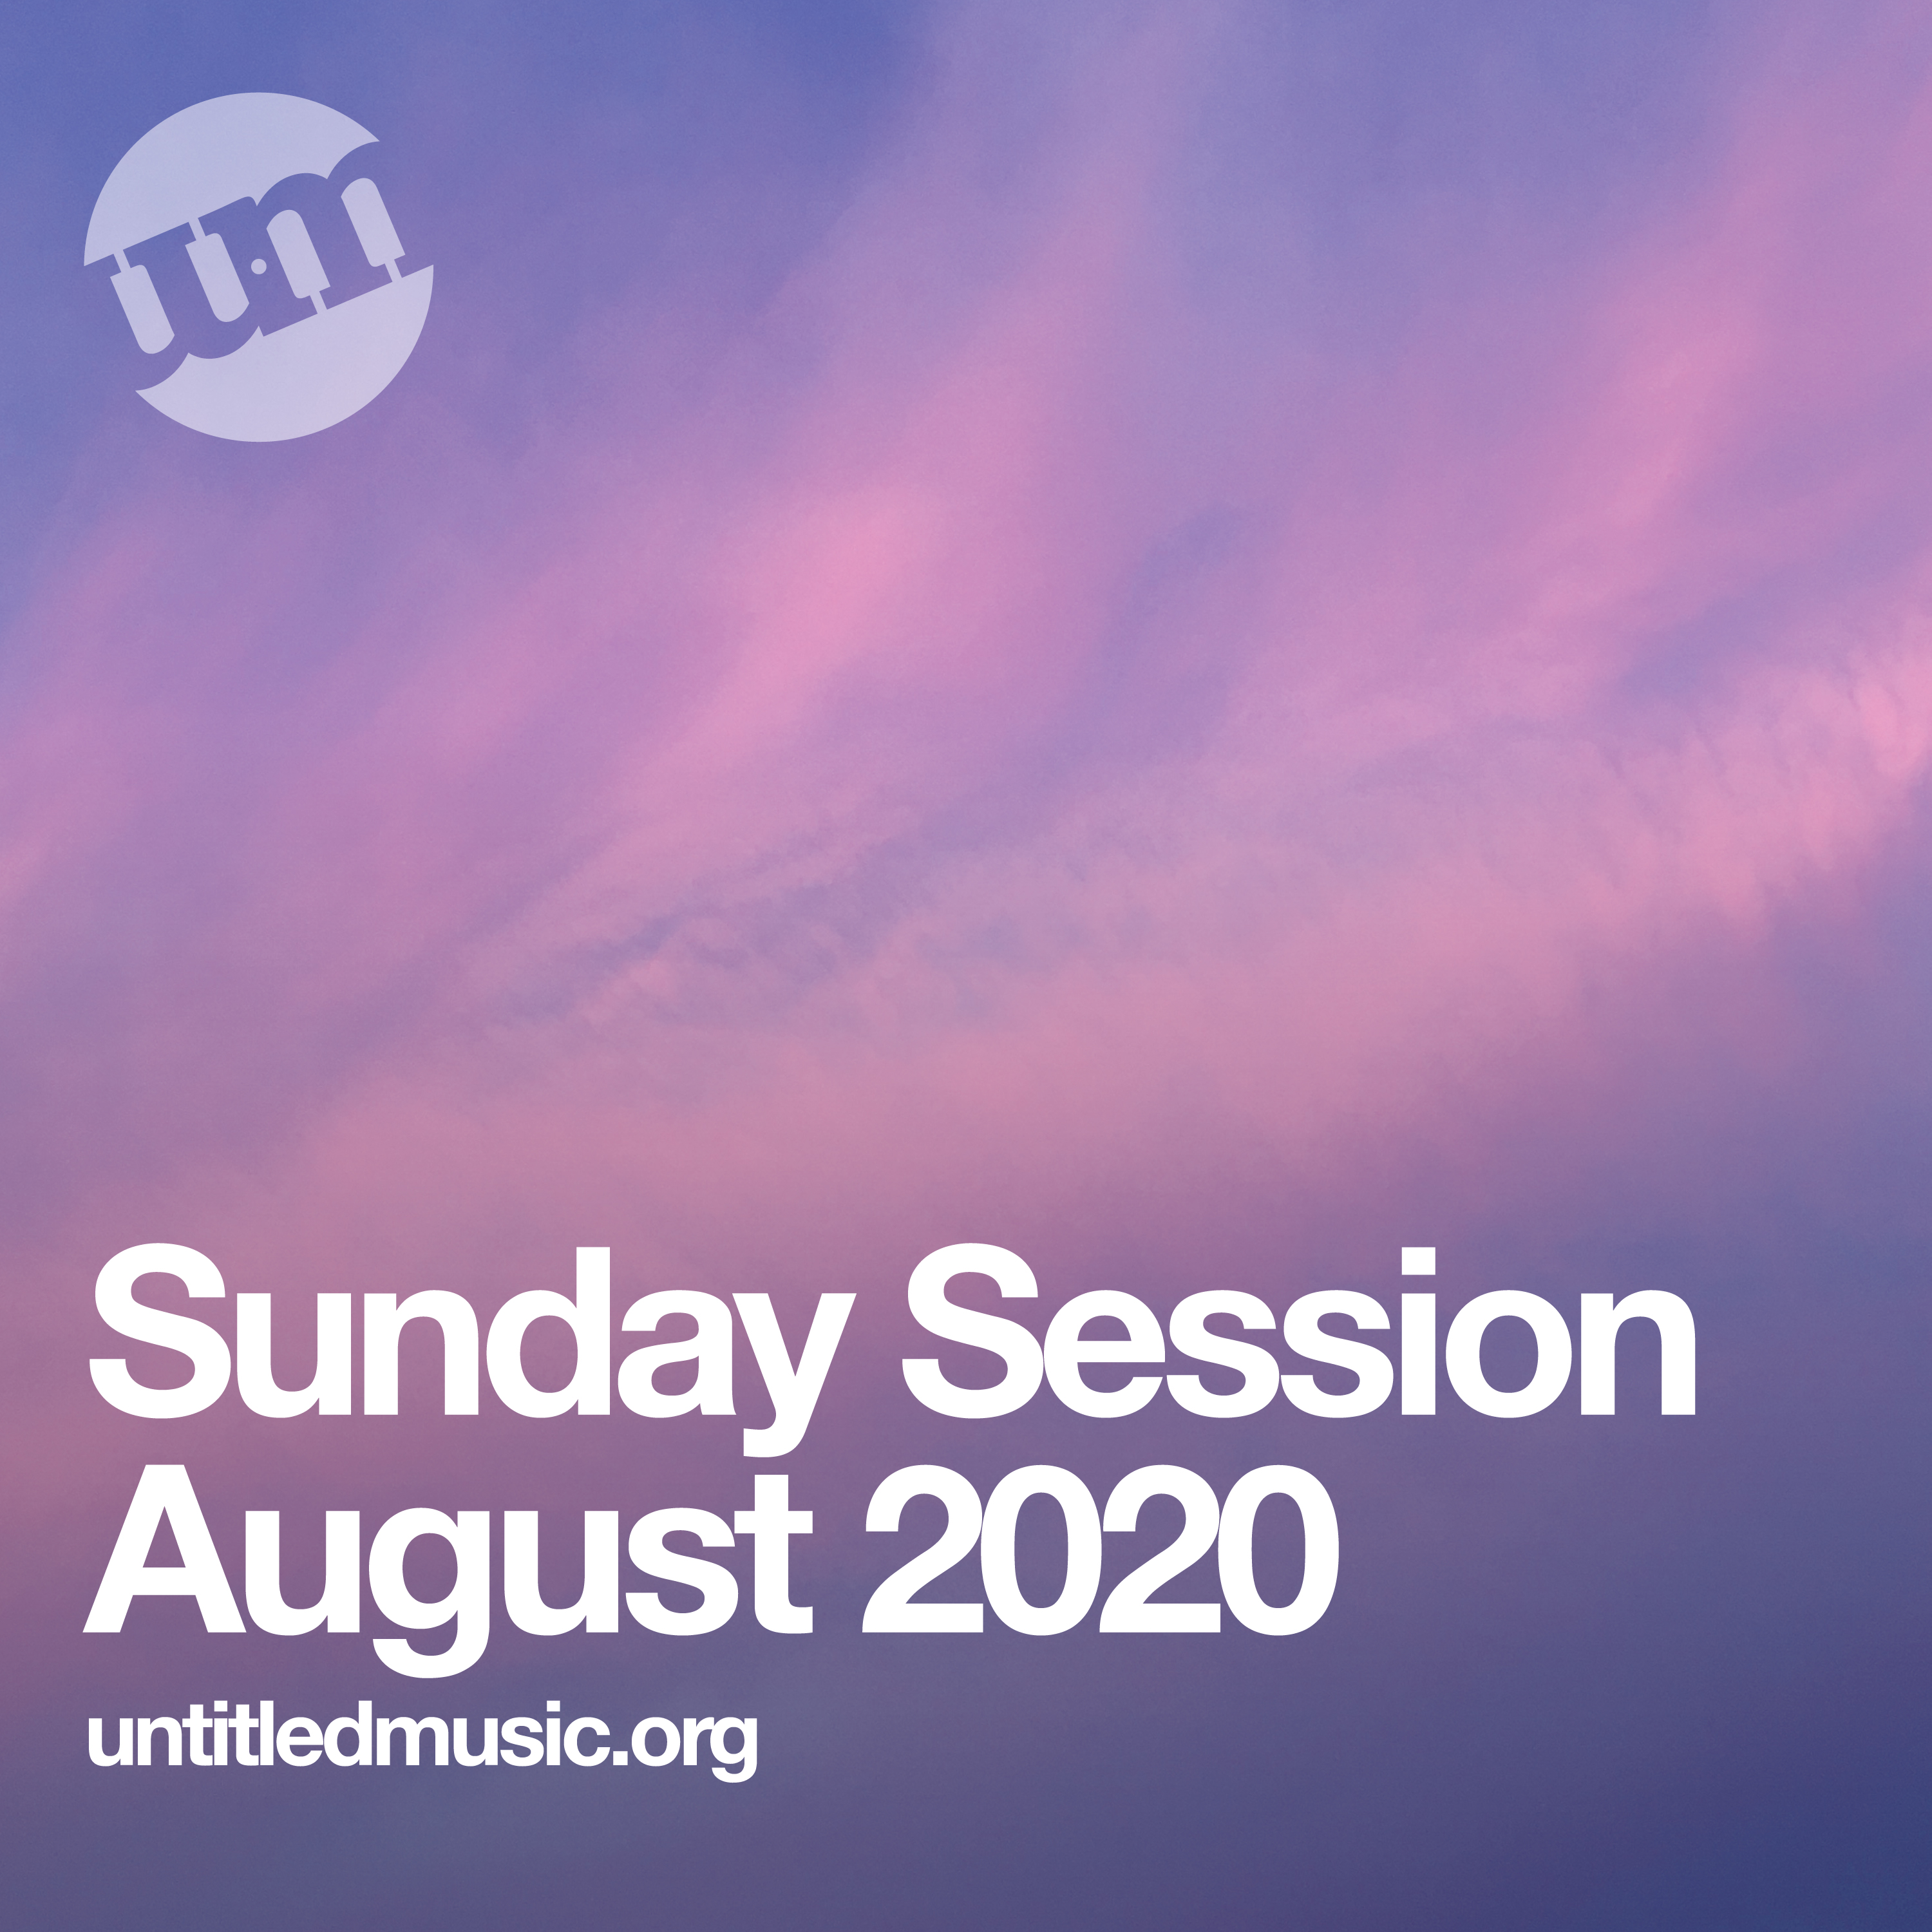 Sunday Session - August 2020